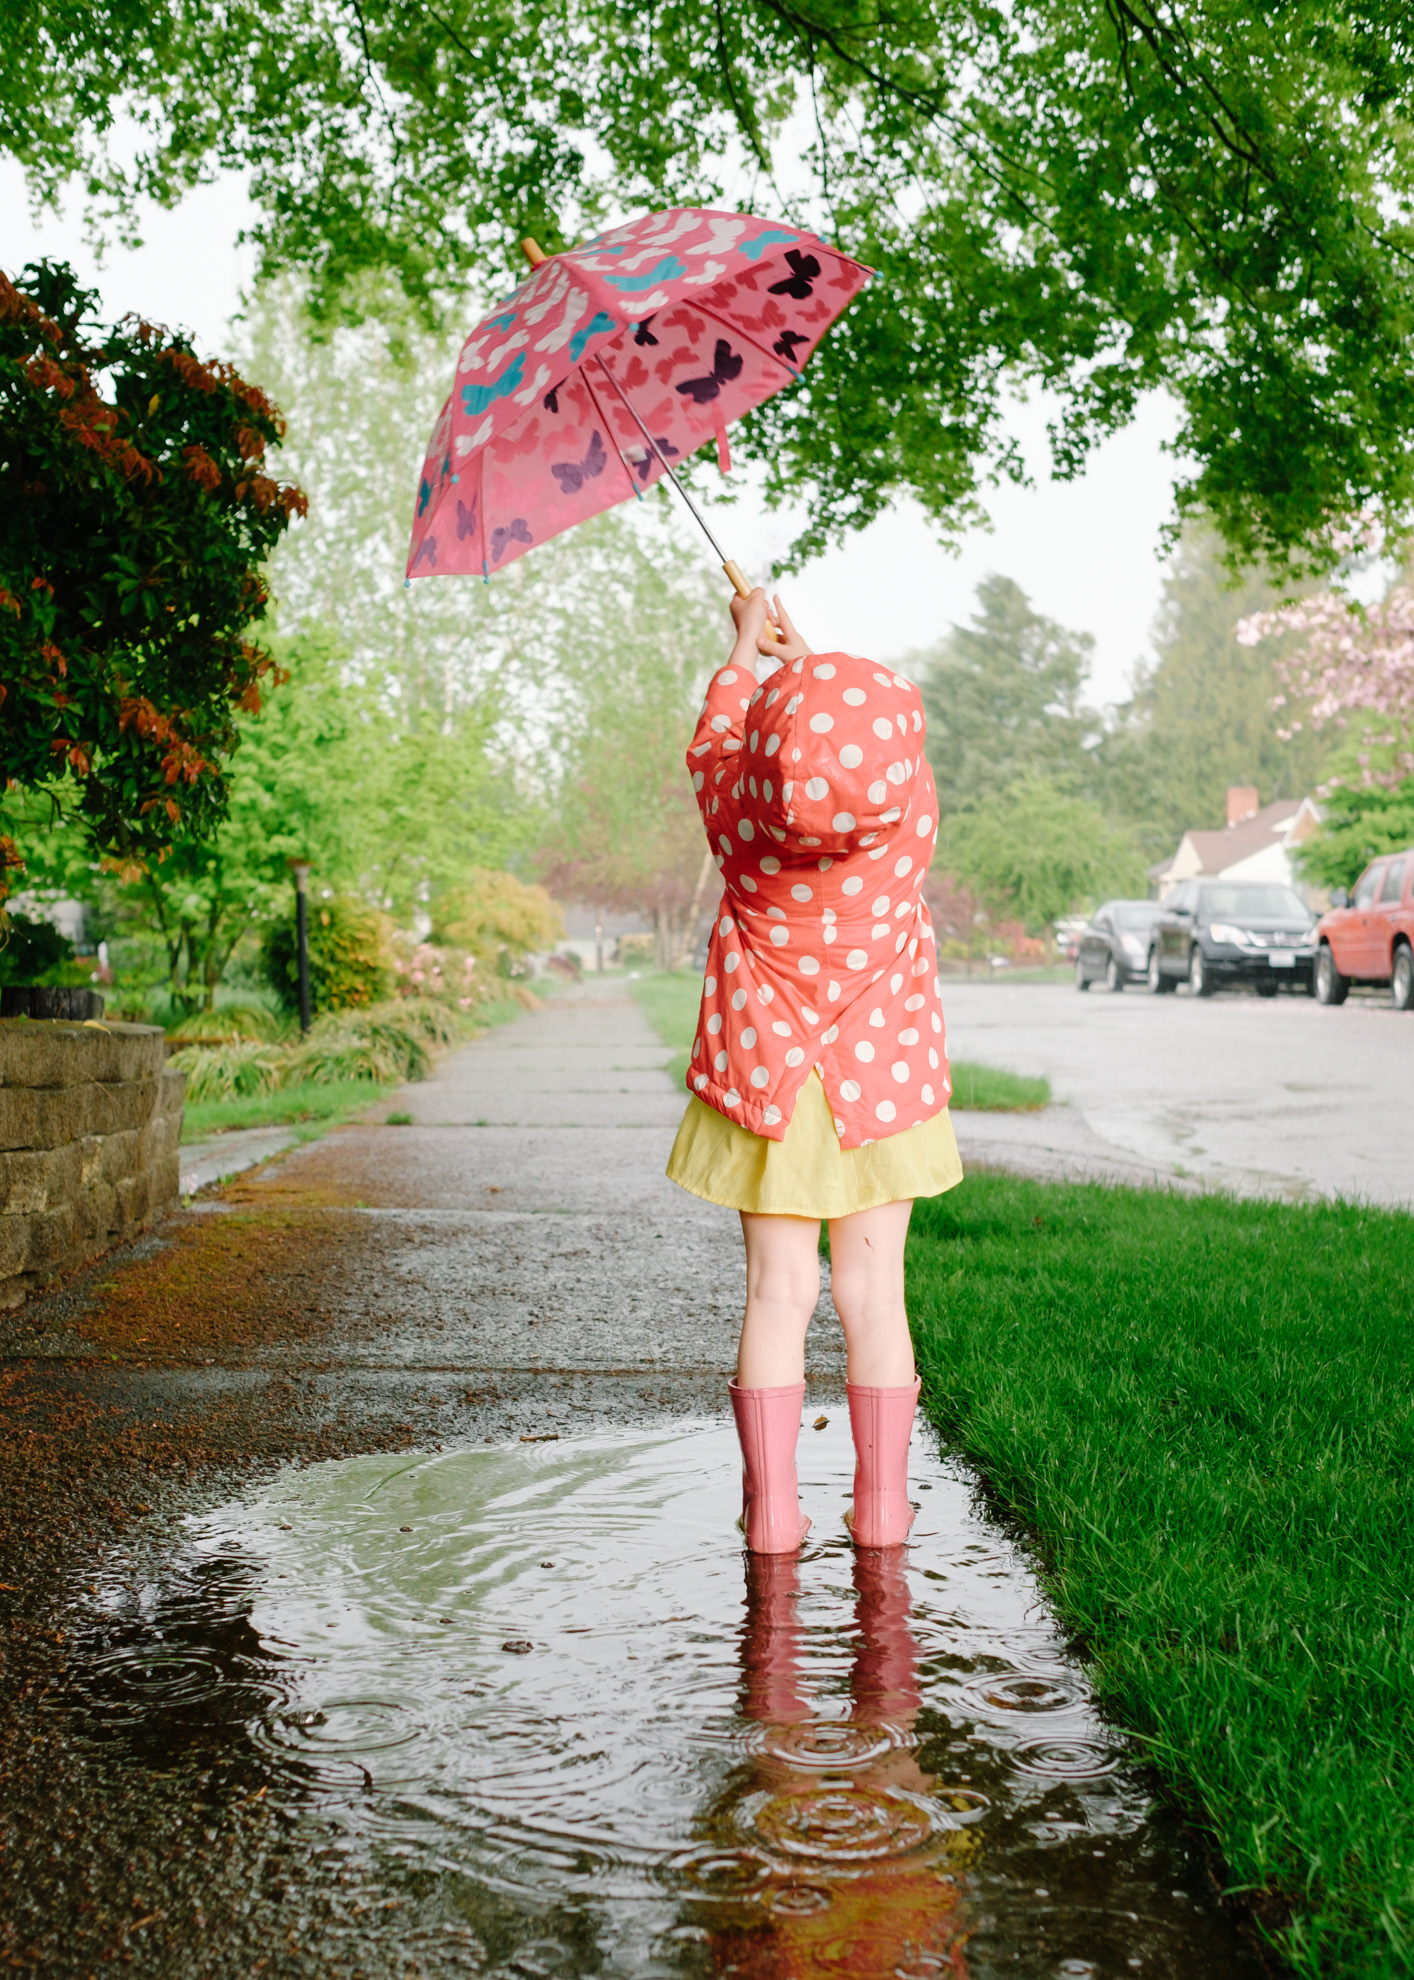 PHOTO I TOOK - The girl and I on a spring afternoon in search of puddles to jump in. I aspire to make great photographs but really, I just take pictures and a few turn out okay. I really like this one. It just captures the girl perfectly.